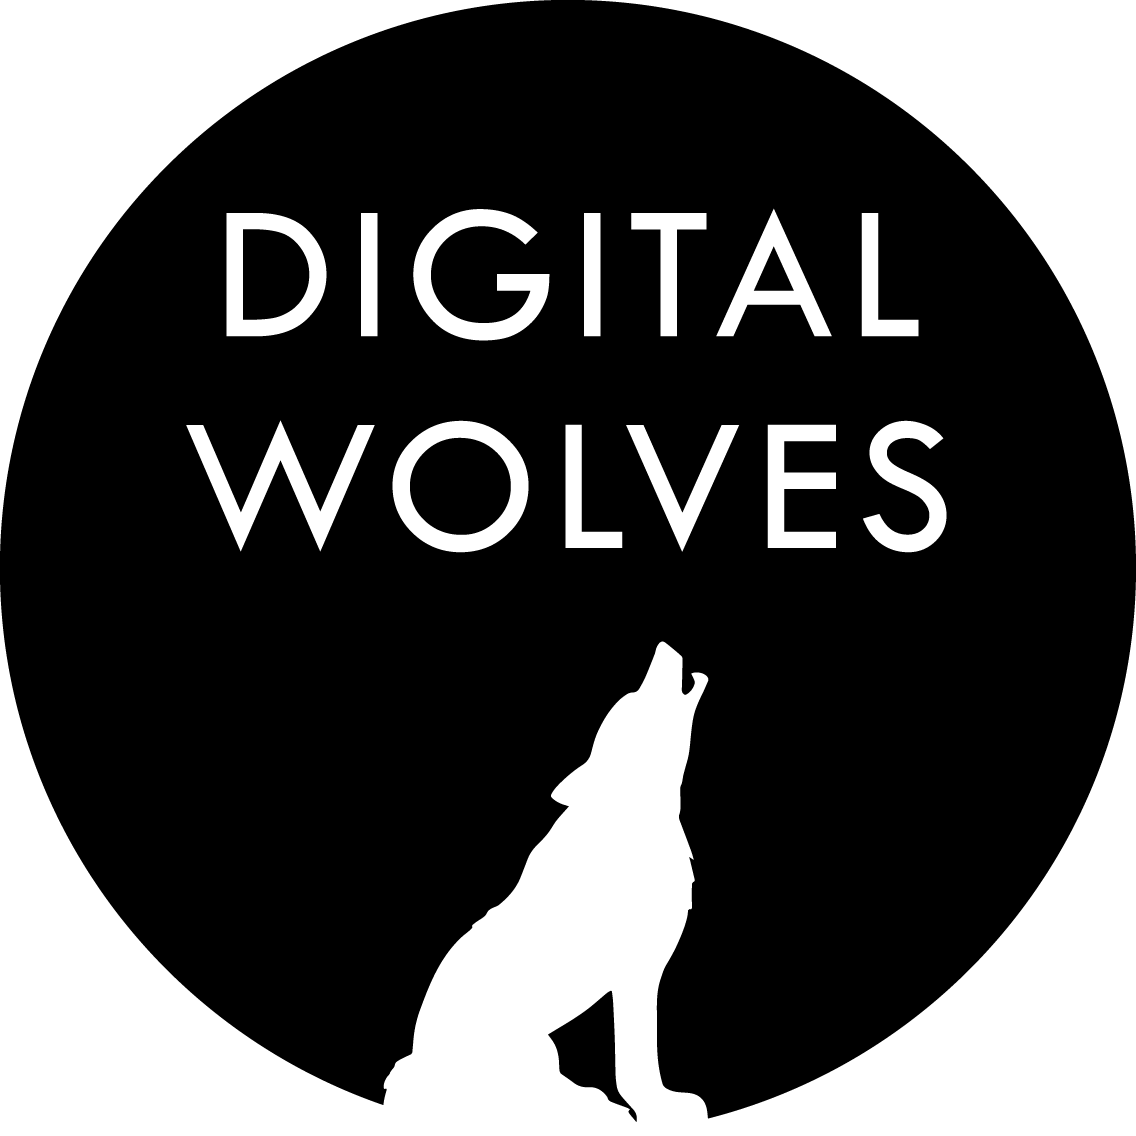 Digital Wolves